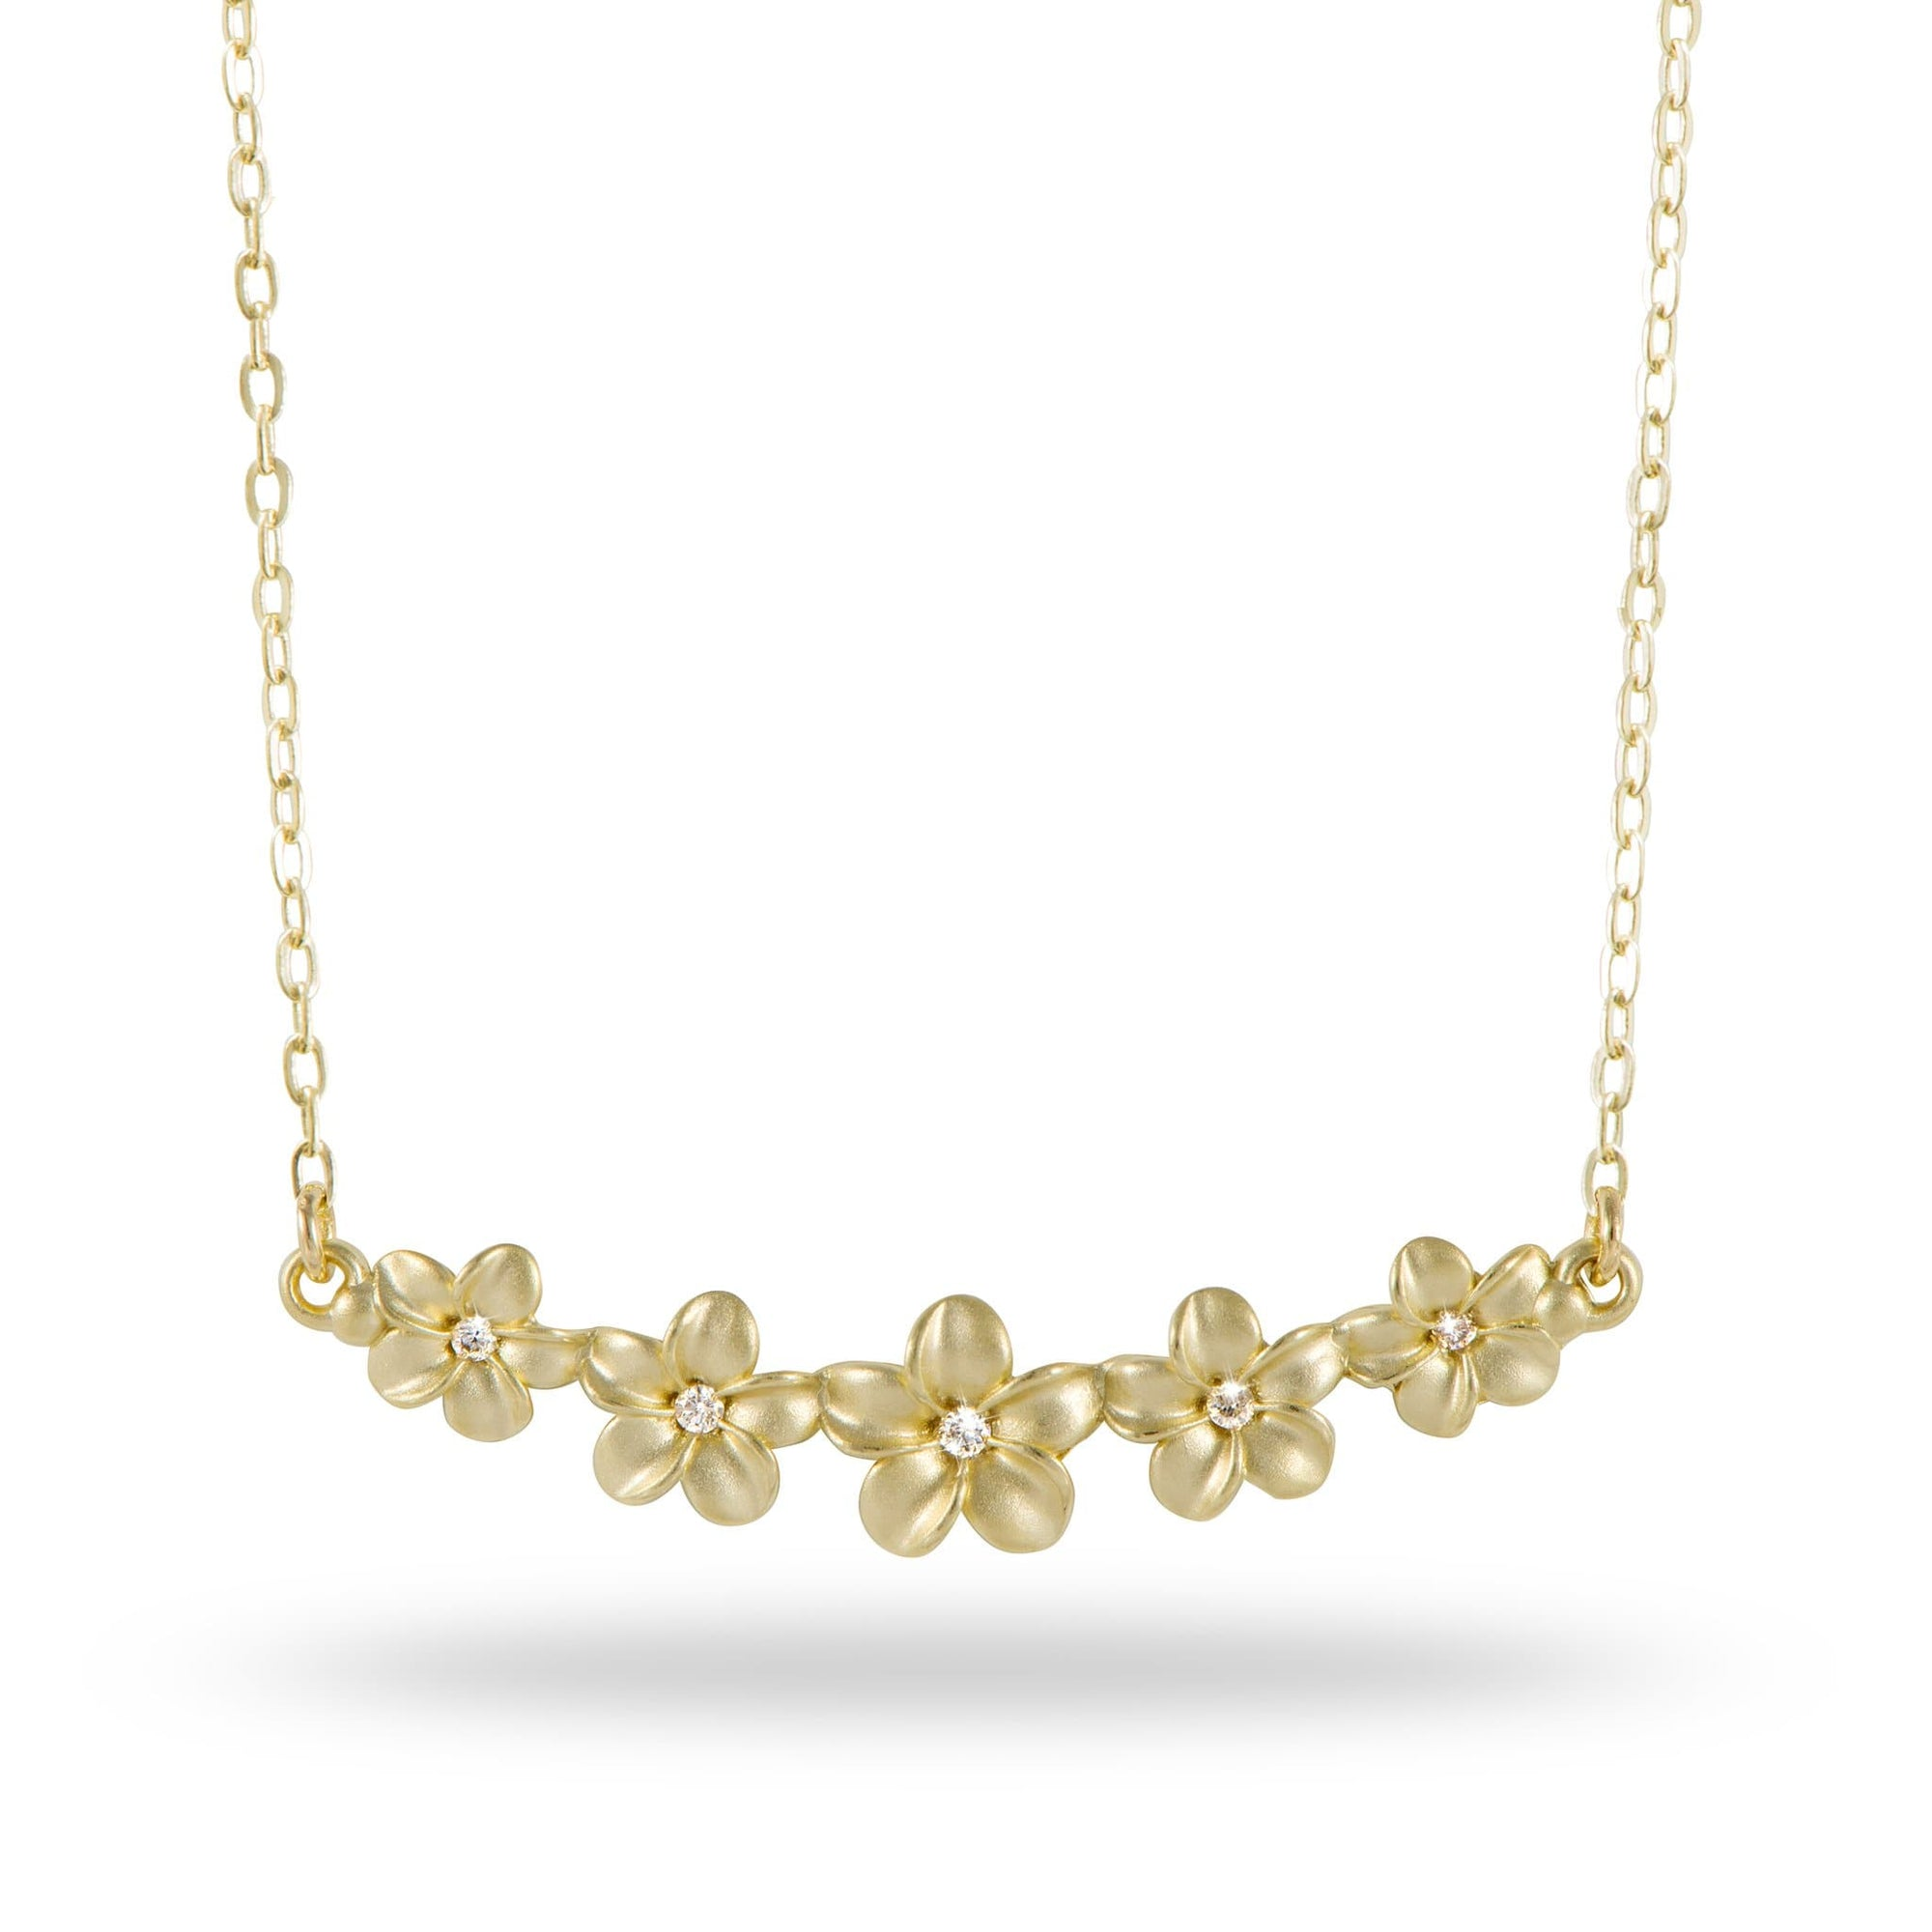 Plumeria Necklace with Diamonds in 14K Yellow Gold - Maui Divers Jewelry